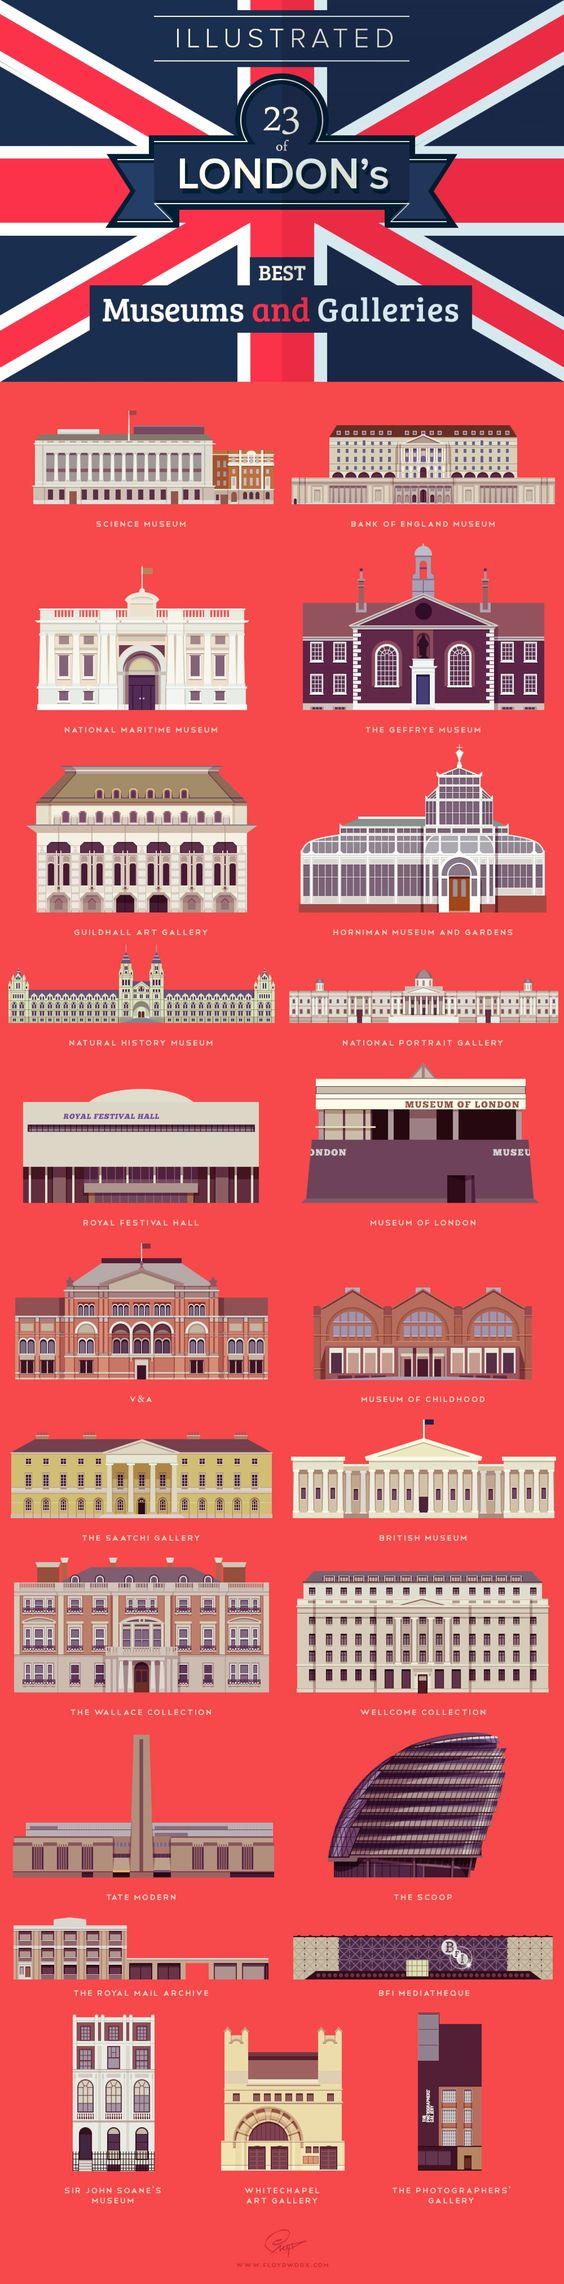 23 museos y galerías de arte para visitar en Londres / Illustrated 23 of London's best museums and galleries